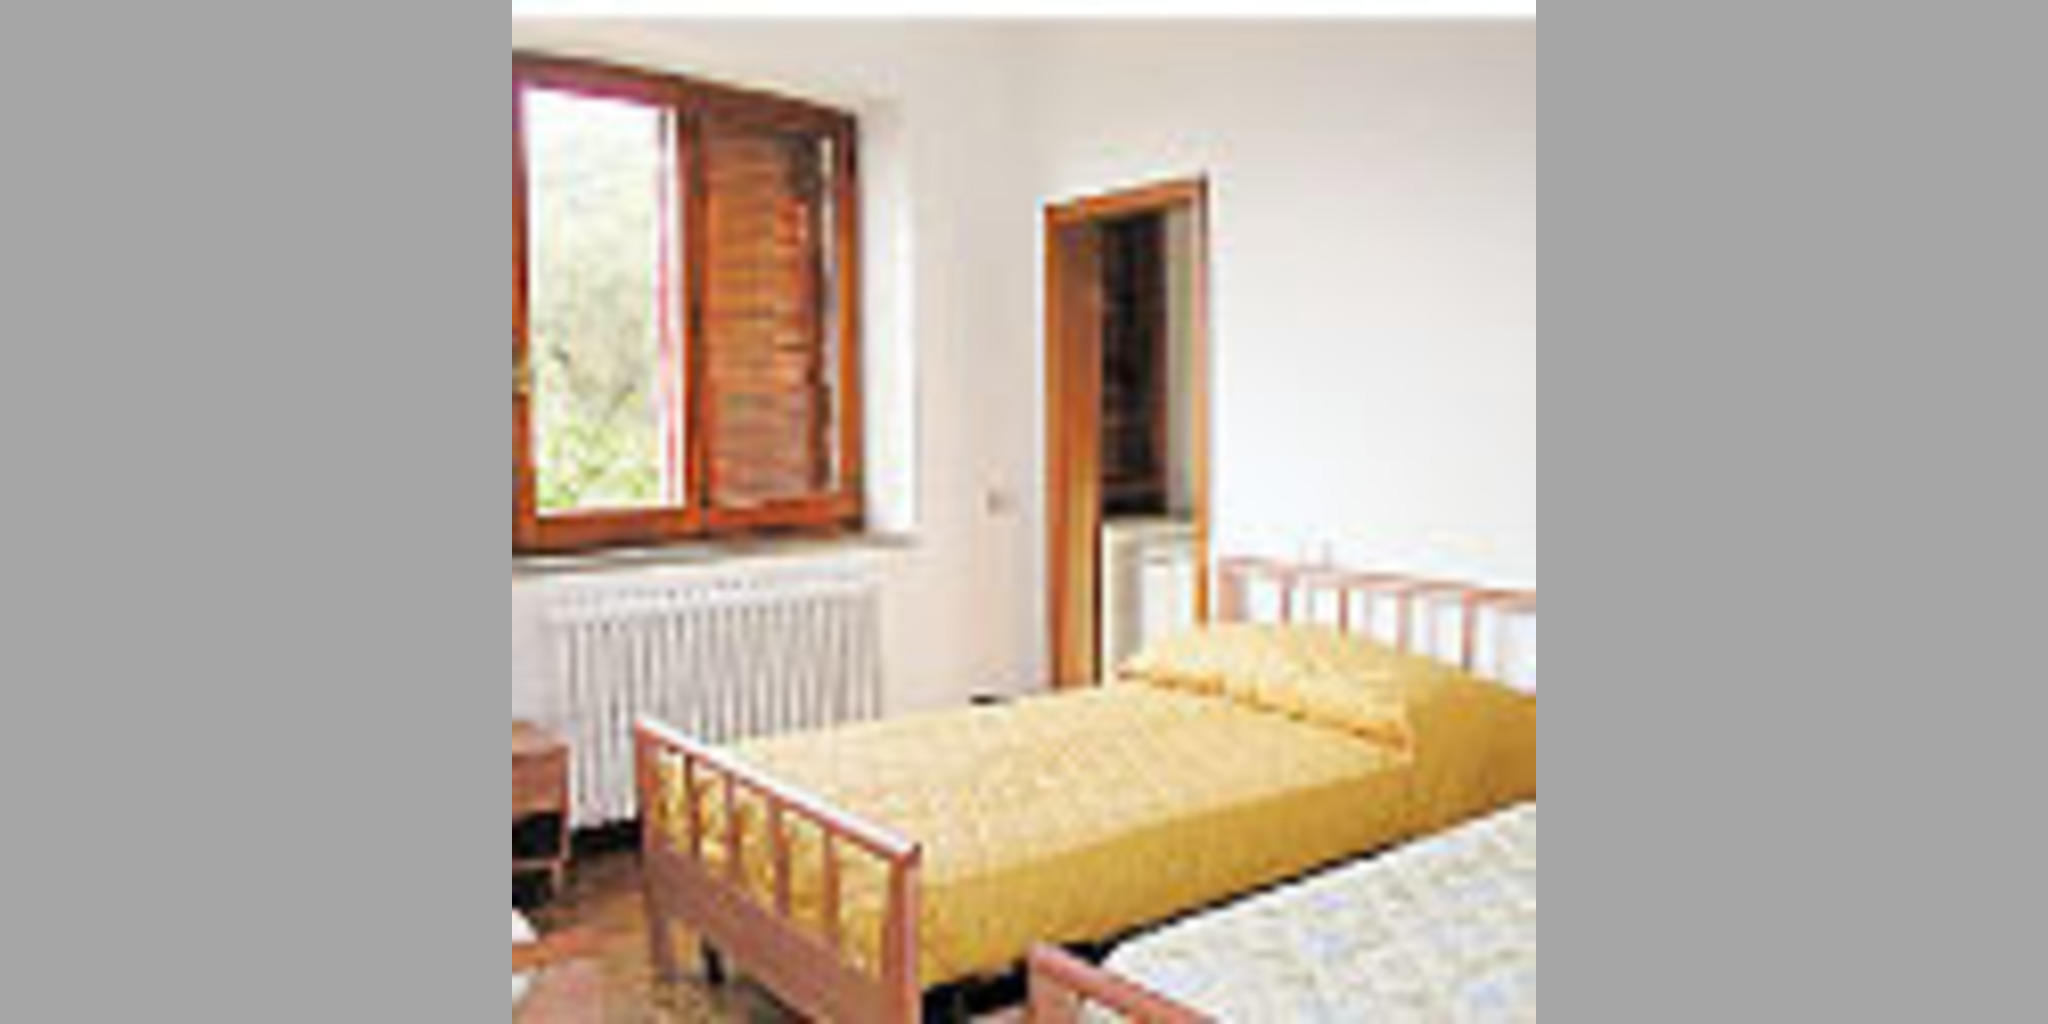 Bed & Breakfast Corciano - Dellottobre